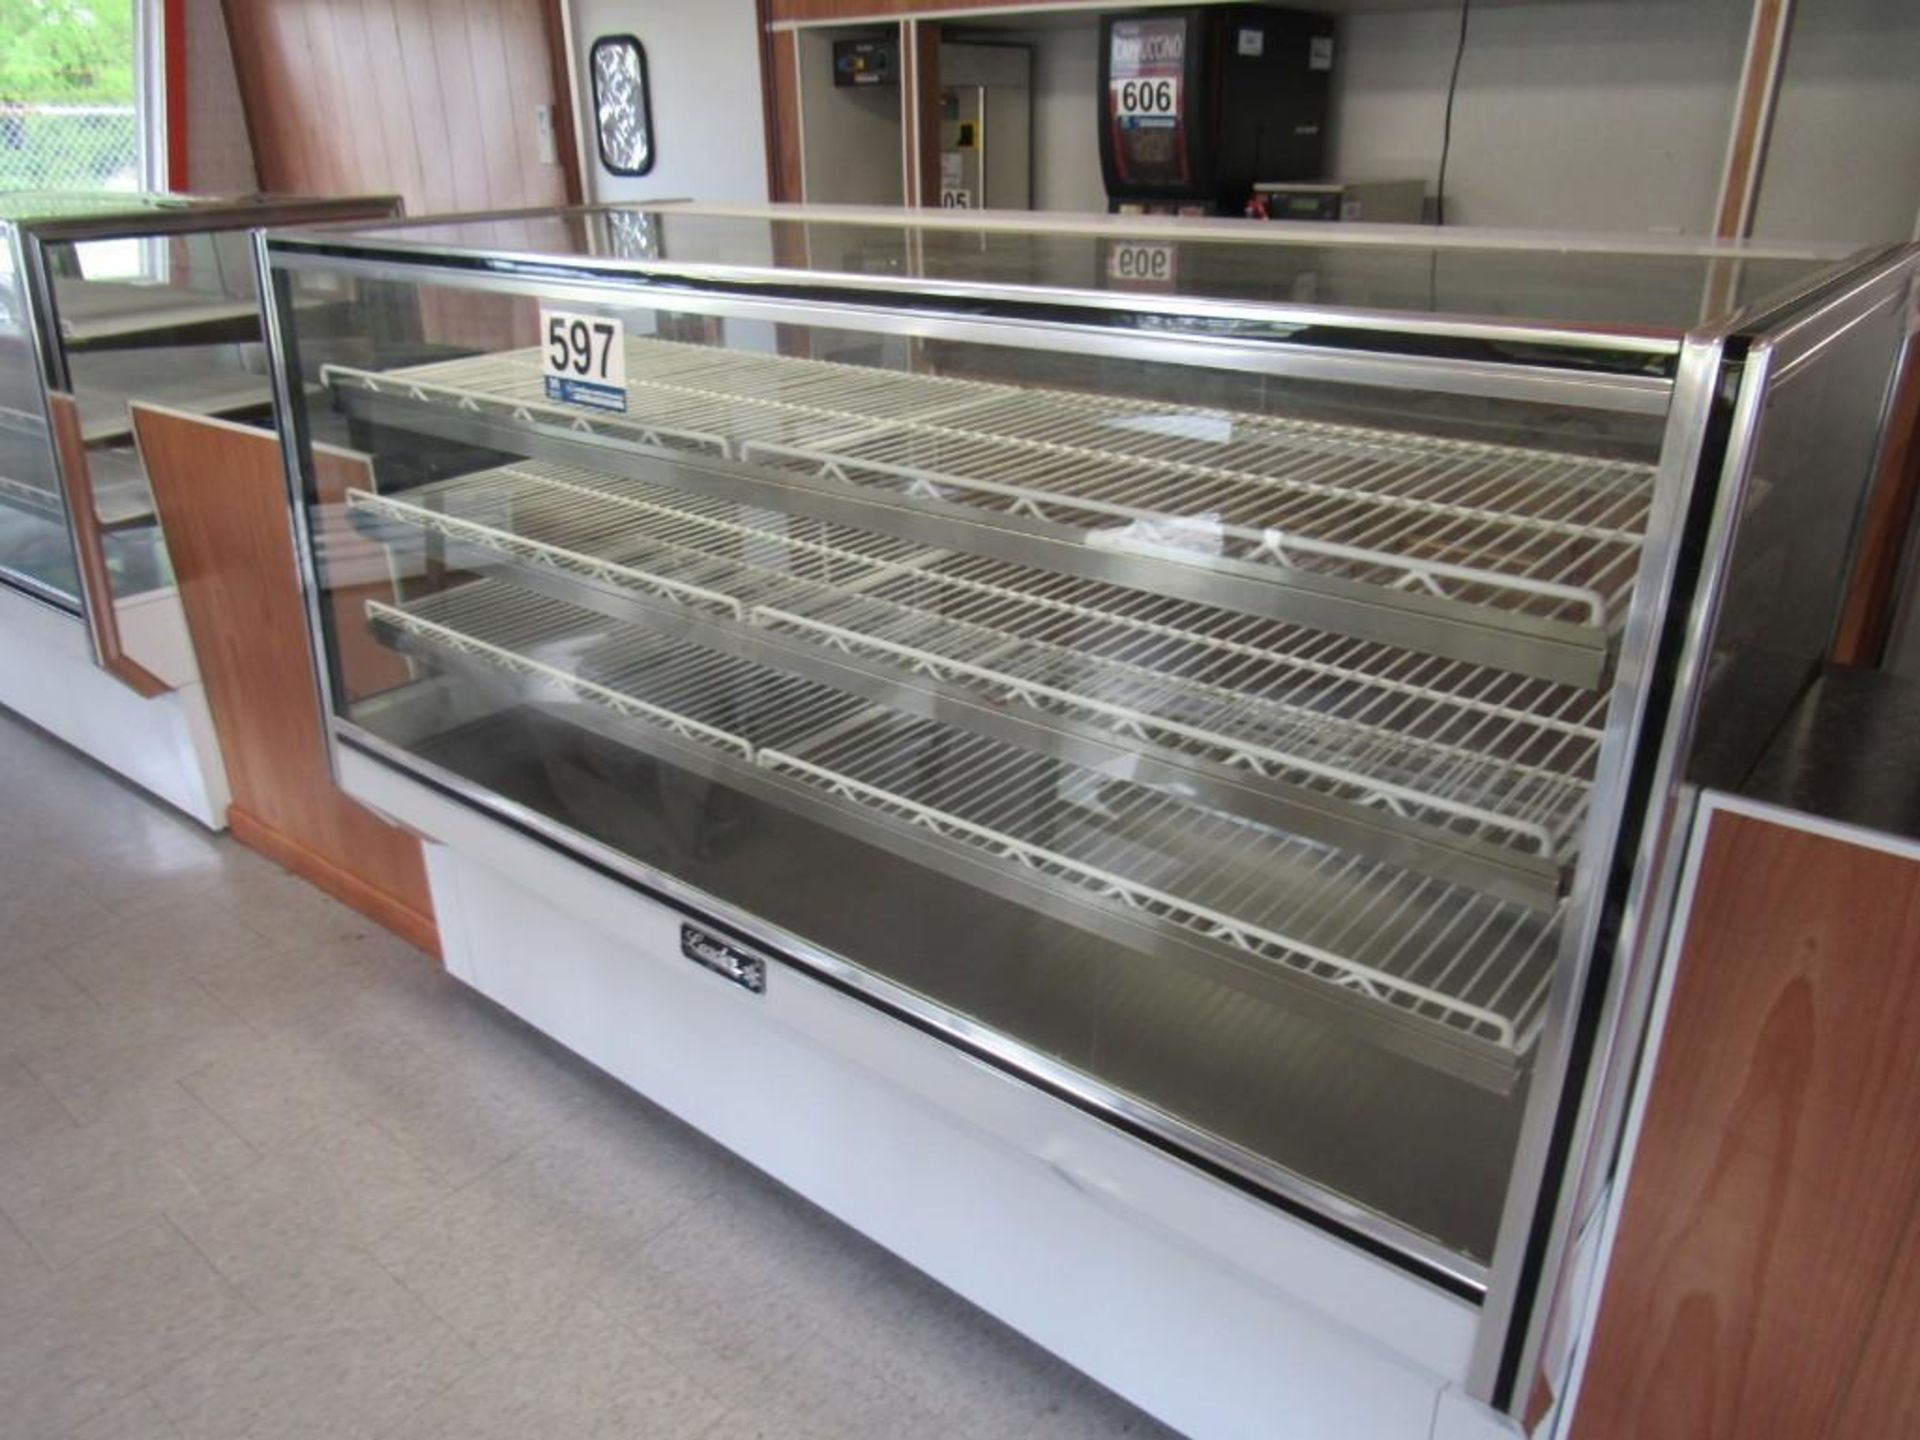 2018 LEADER MANUFACTURING DISPLAY CABINET - Image 2 of 4